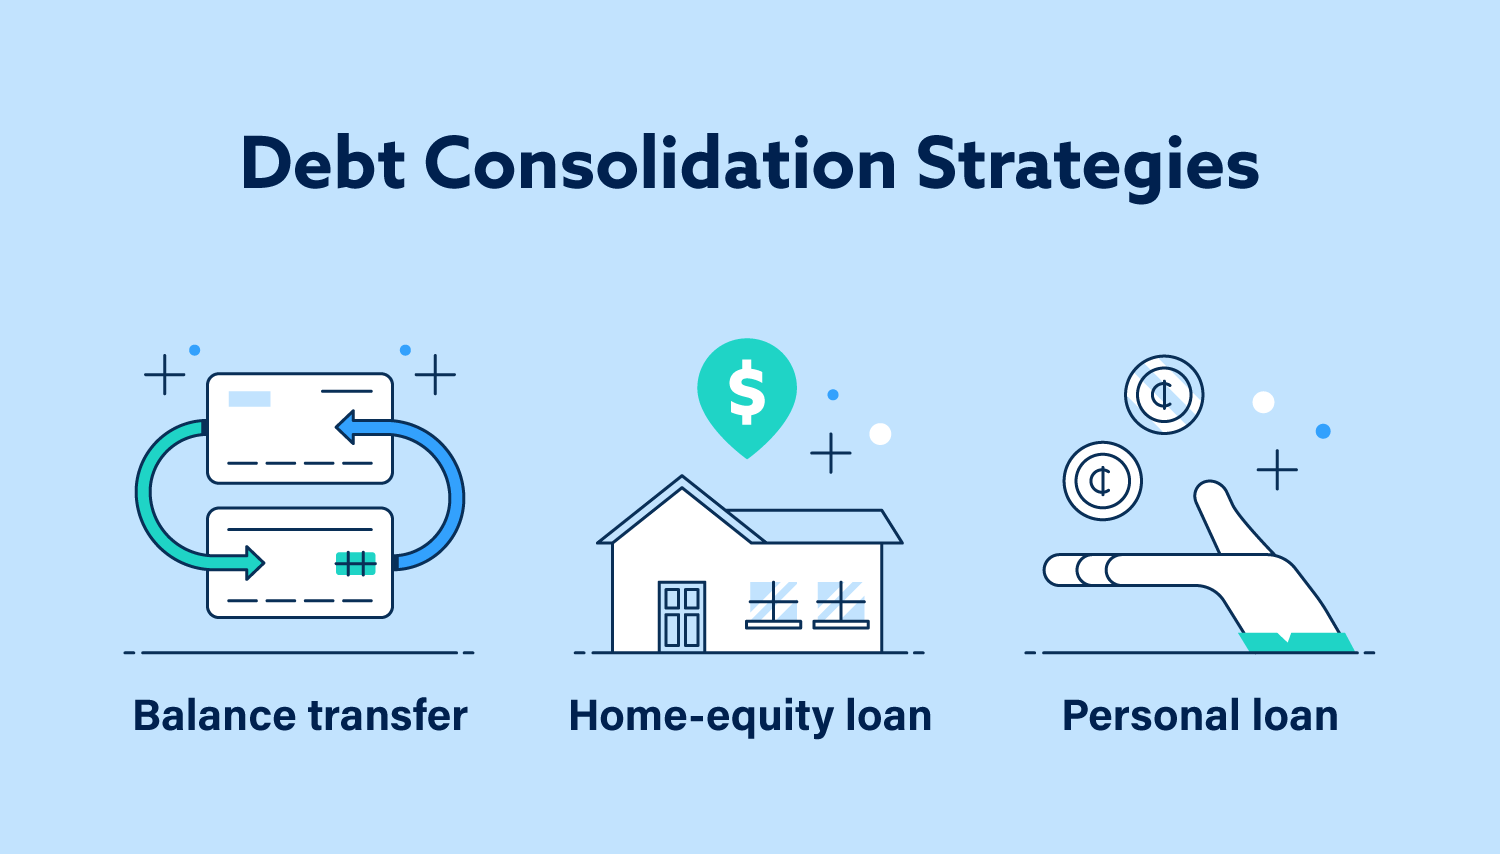 Debt consolidation strategies include making a balance transfer, taking out a home equity loan or taking out a personal loan.